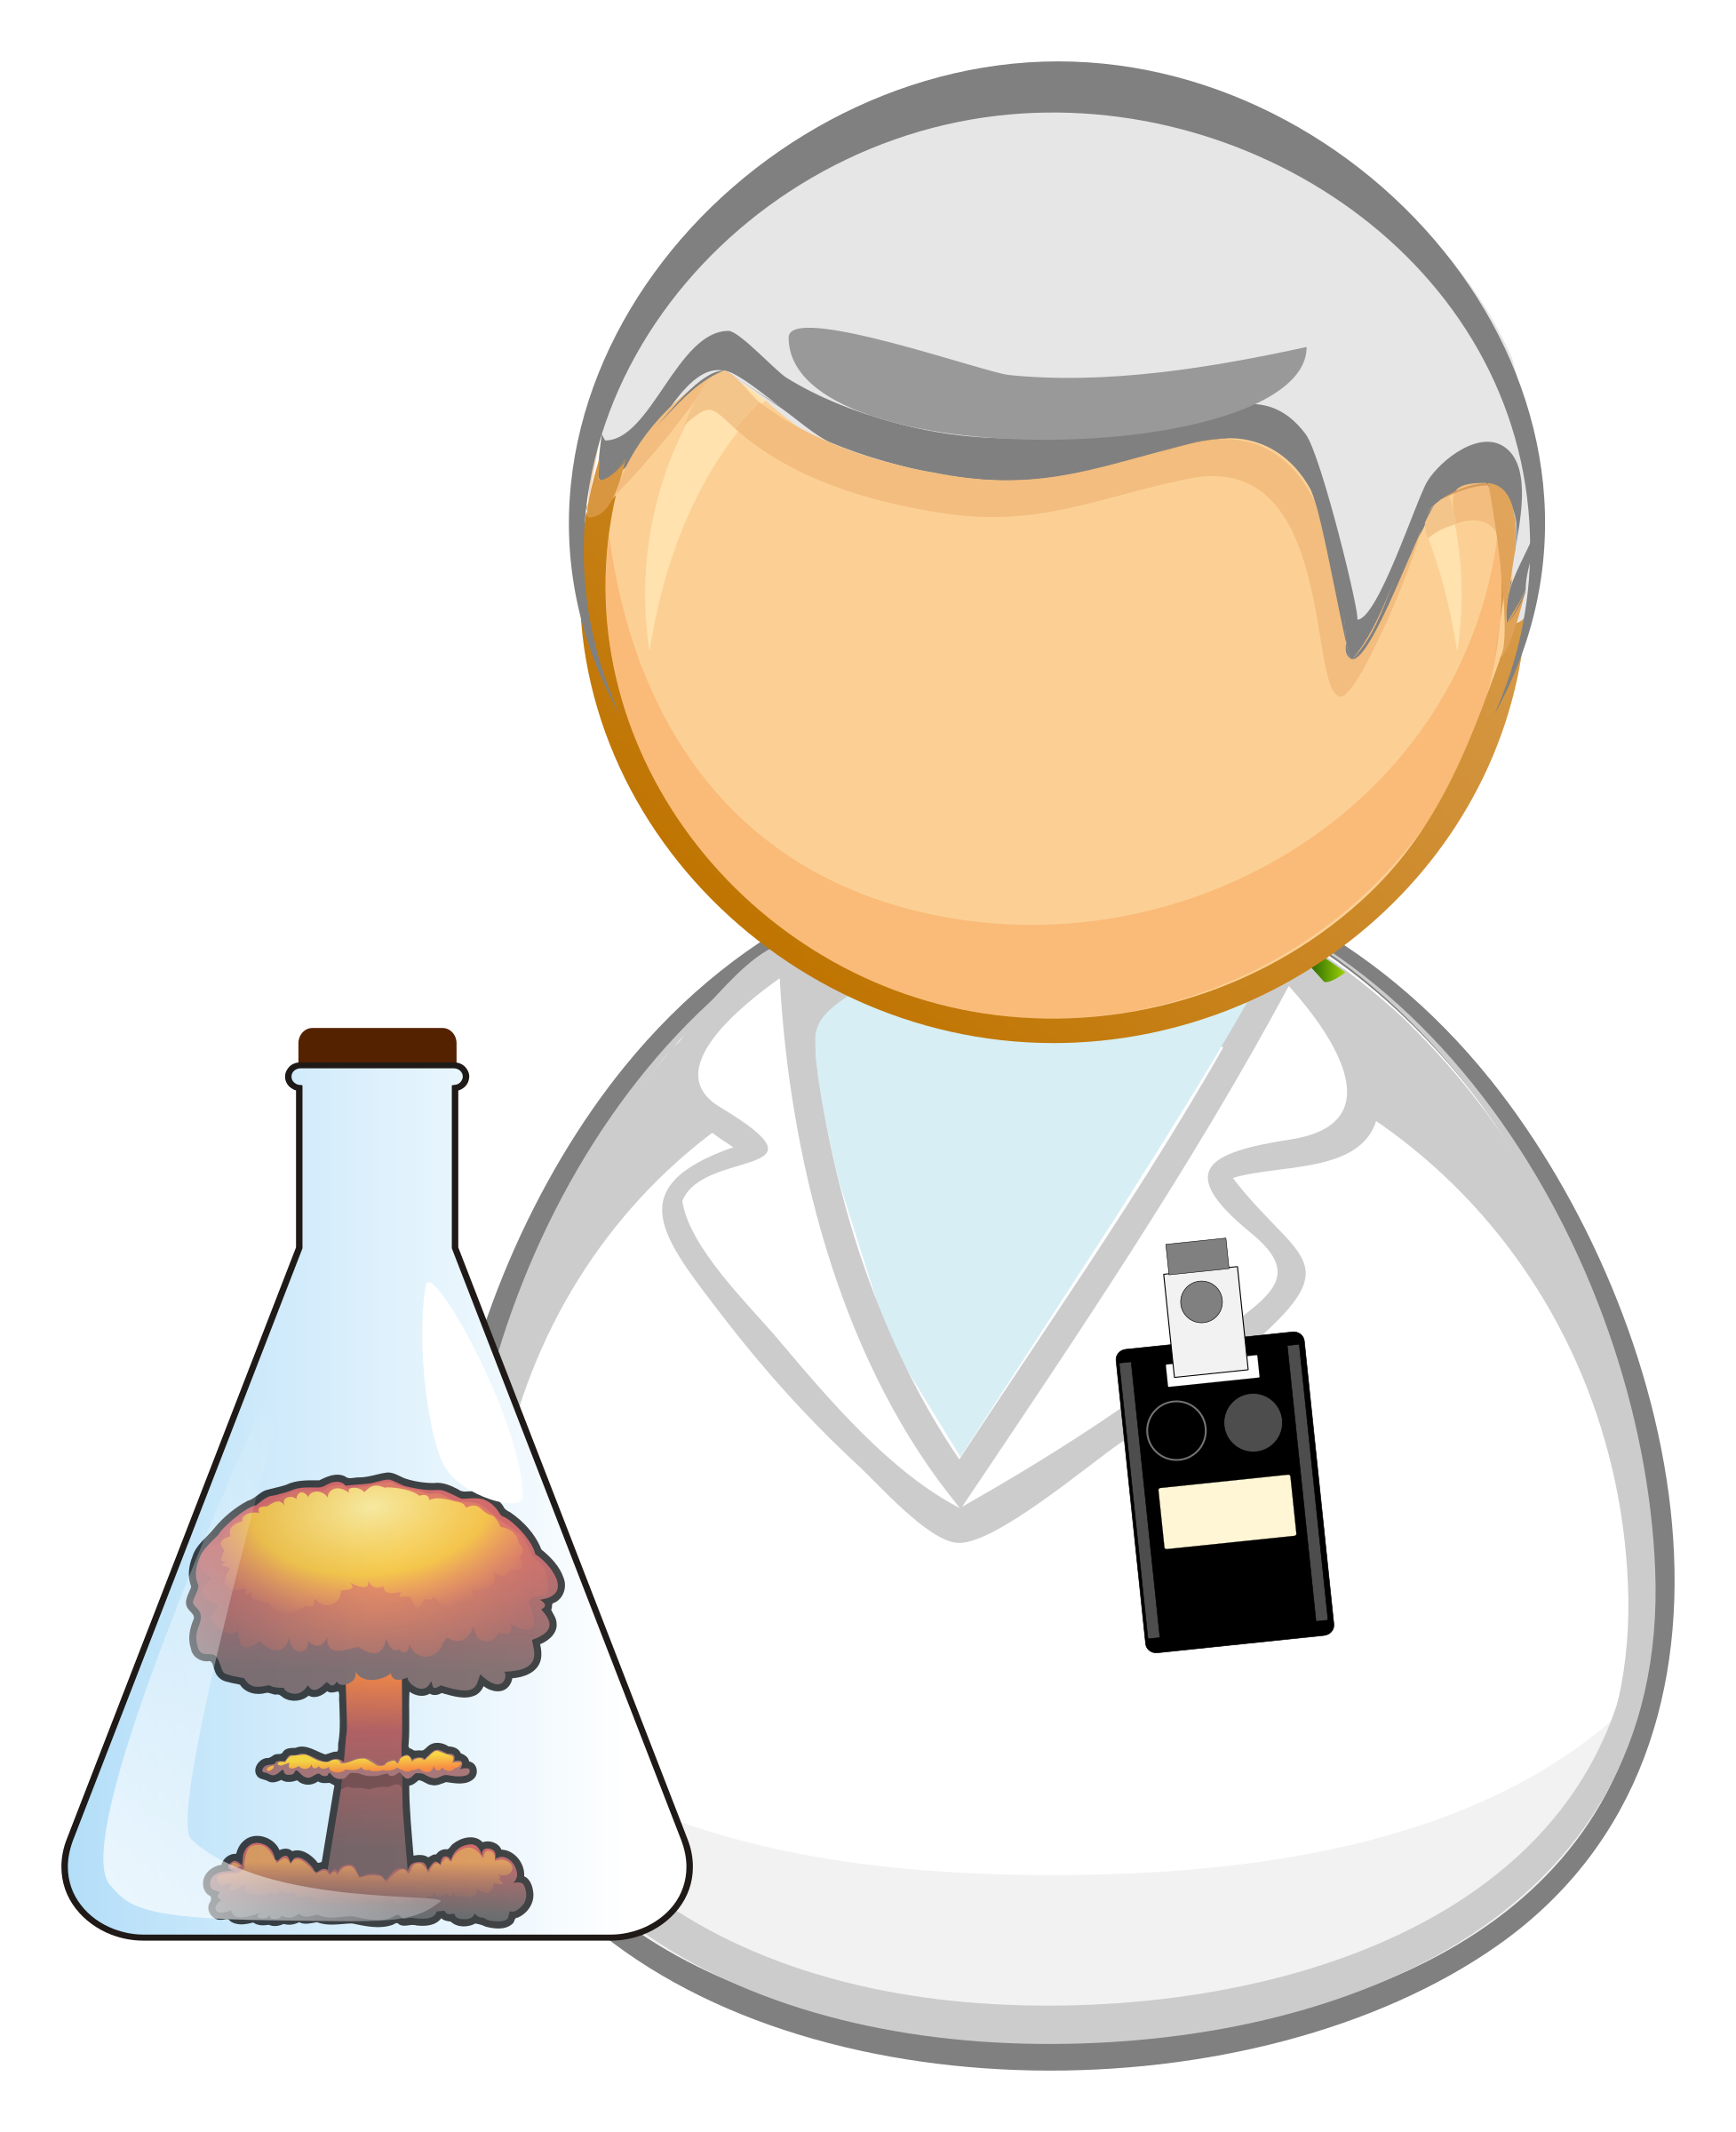 Nuclear scientist / researcher by Juhele